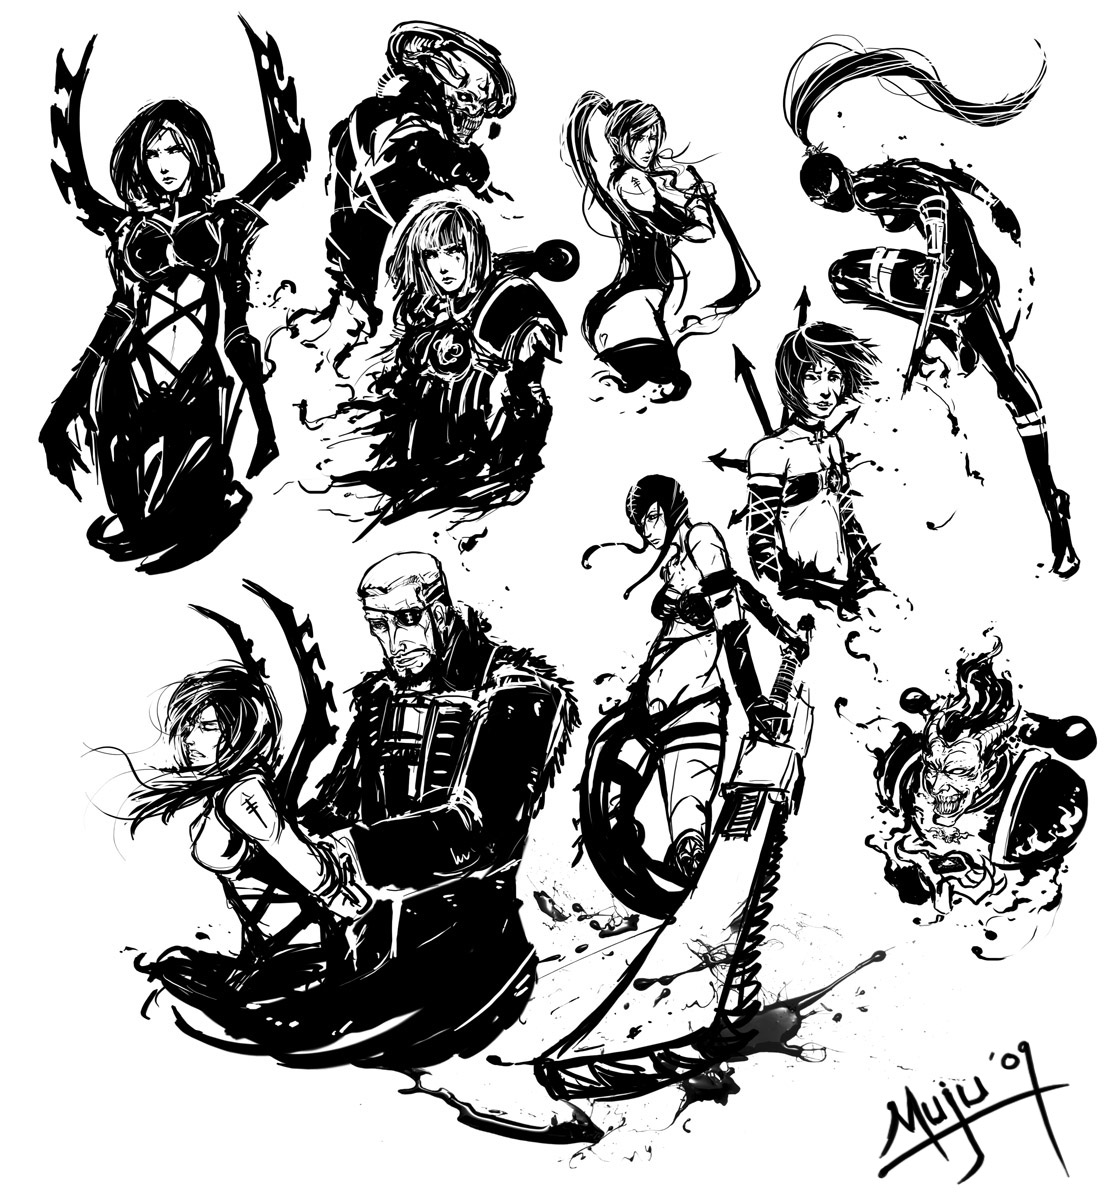 40k midnight scribbles by muju